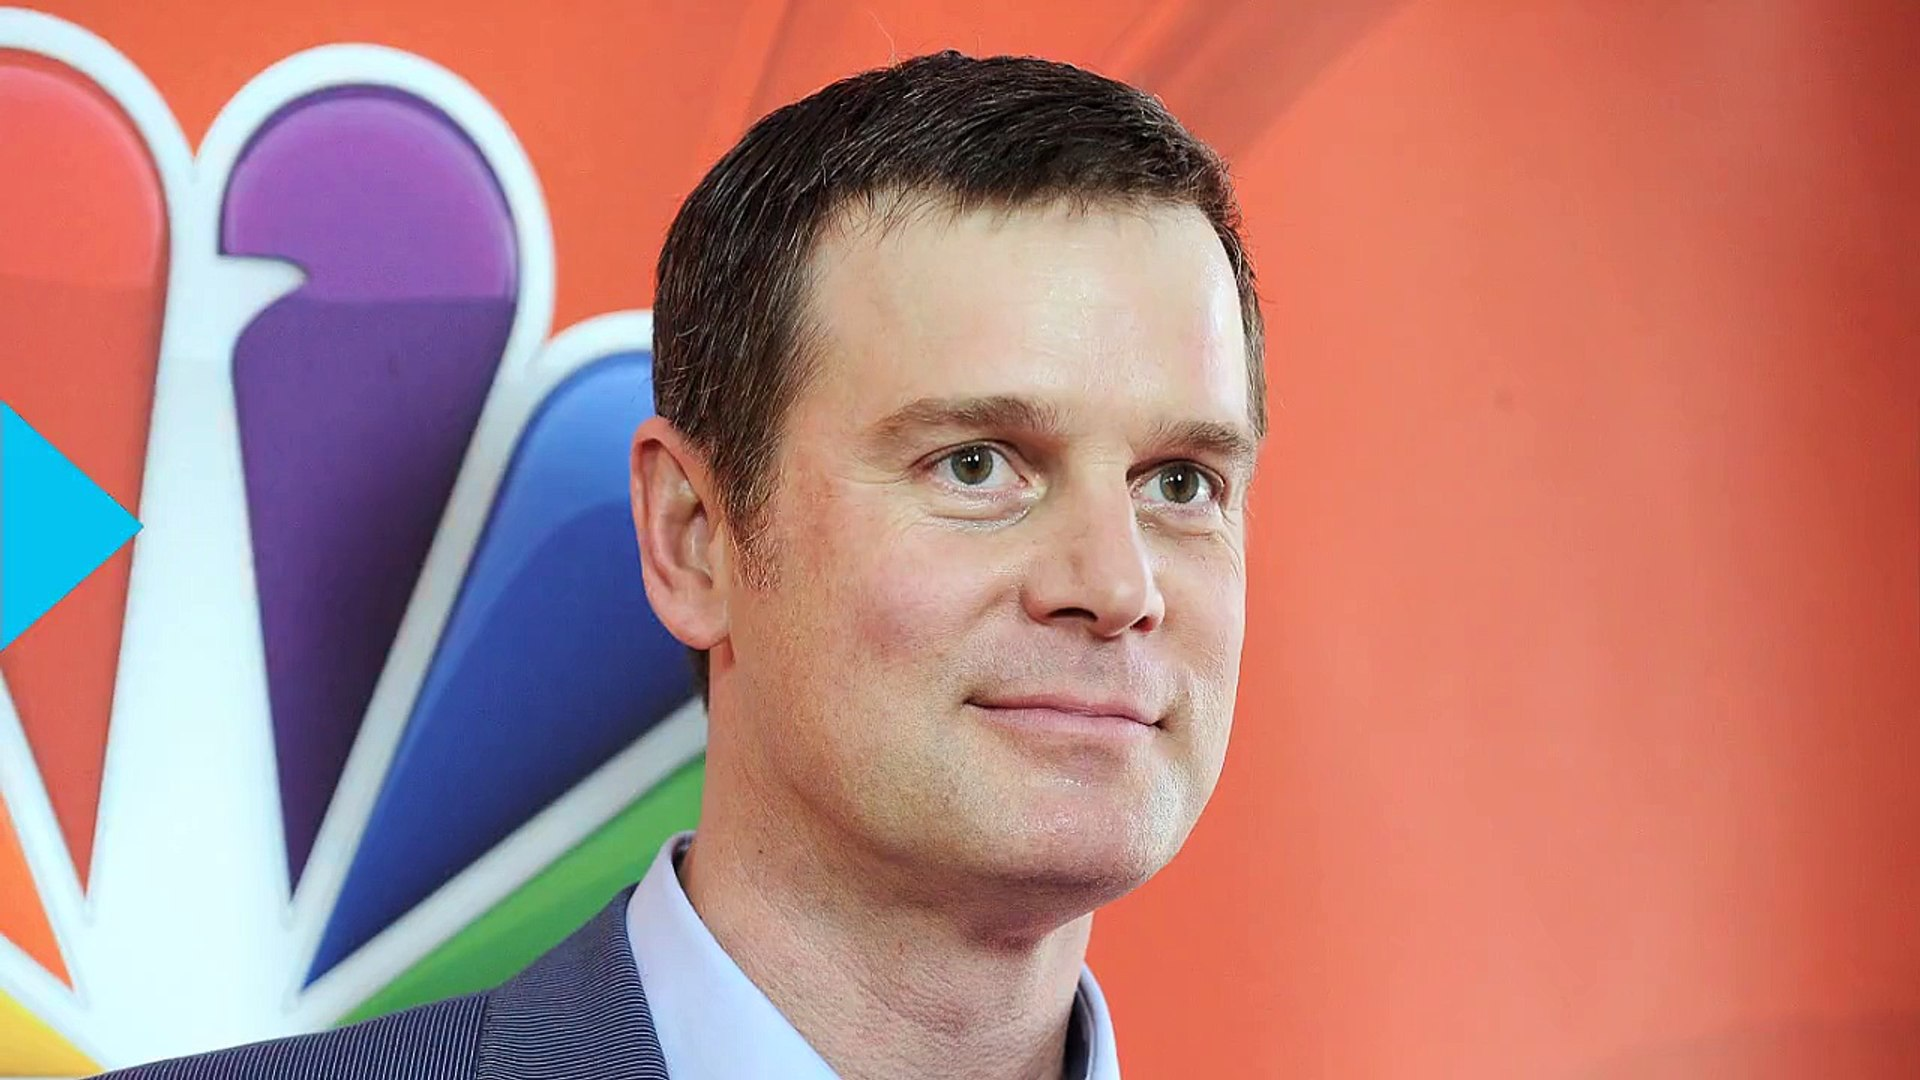 Peter Krause to Star in New Shonda Rhimes Show